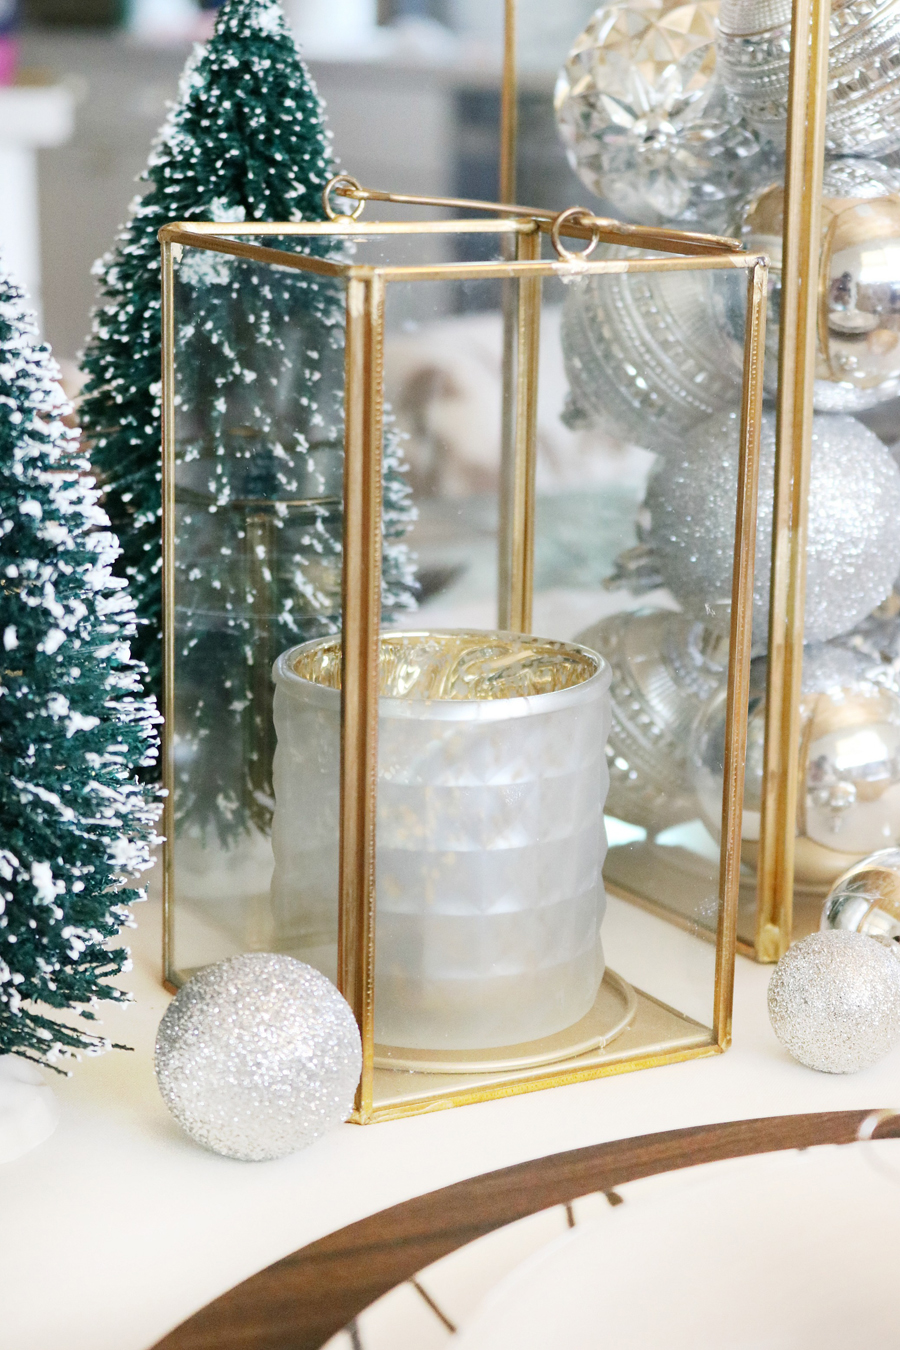 Simple and Modern Christmas Dining Table Ideas - BHG Live Better Gold Lanterns